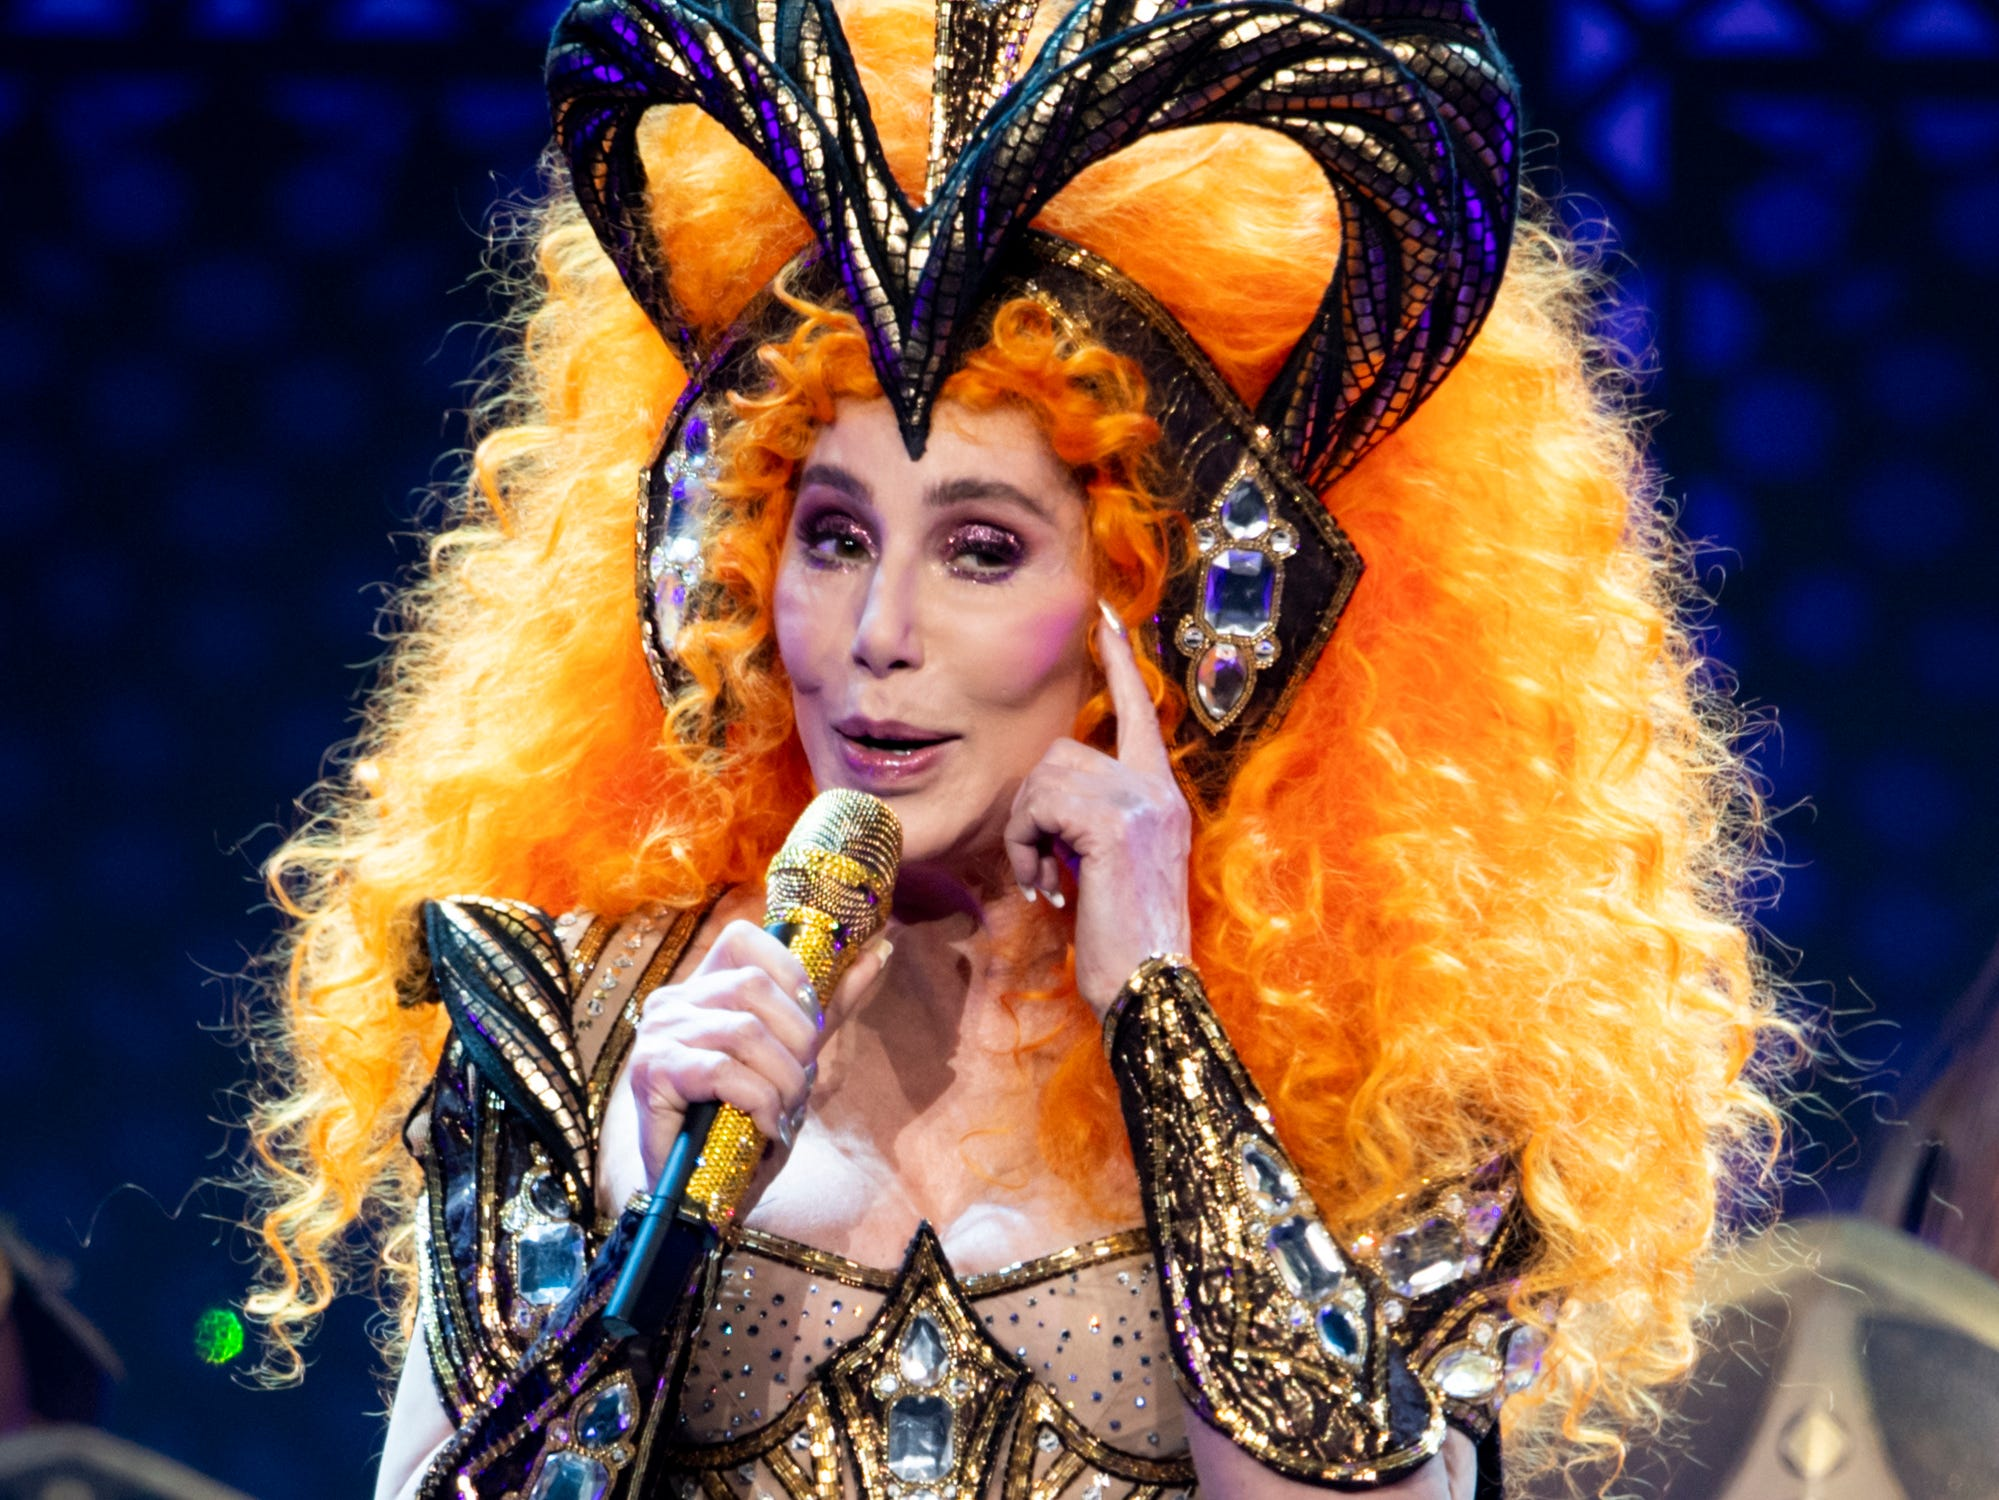 Cher performs during the Here We Go Again Tour at Bridgestone Arena in Nashville, Tenn., Thursday, Jan. 31, 2019.